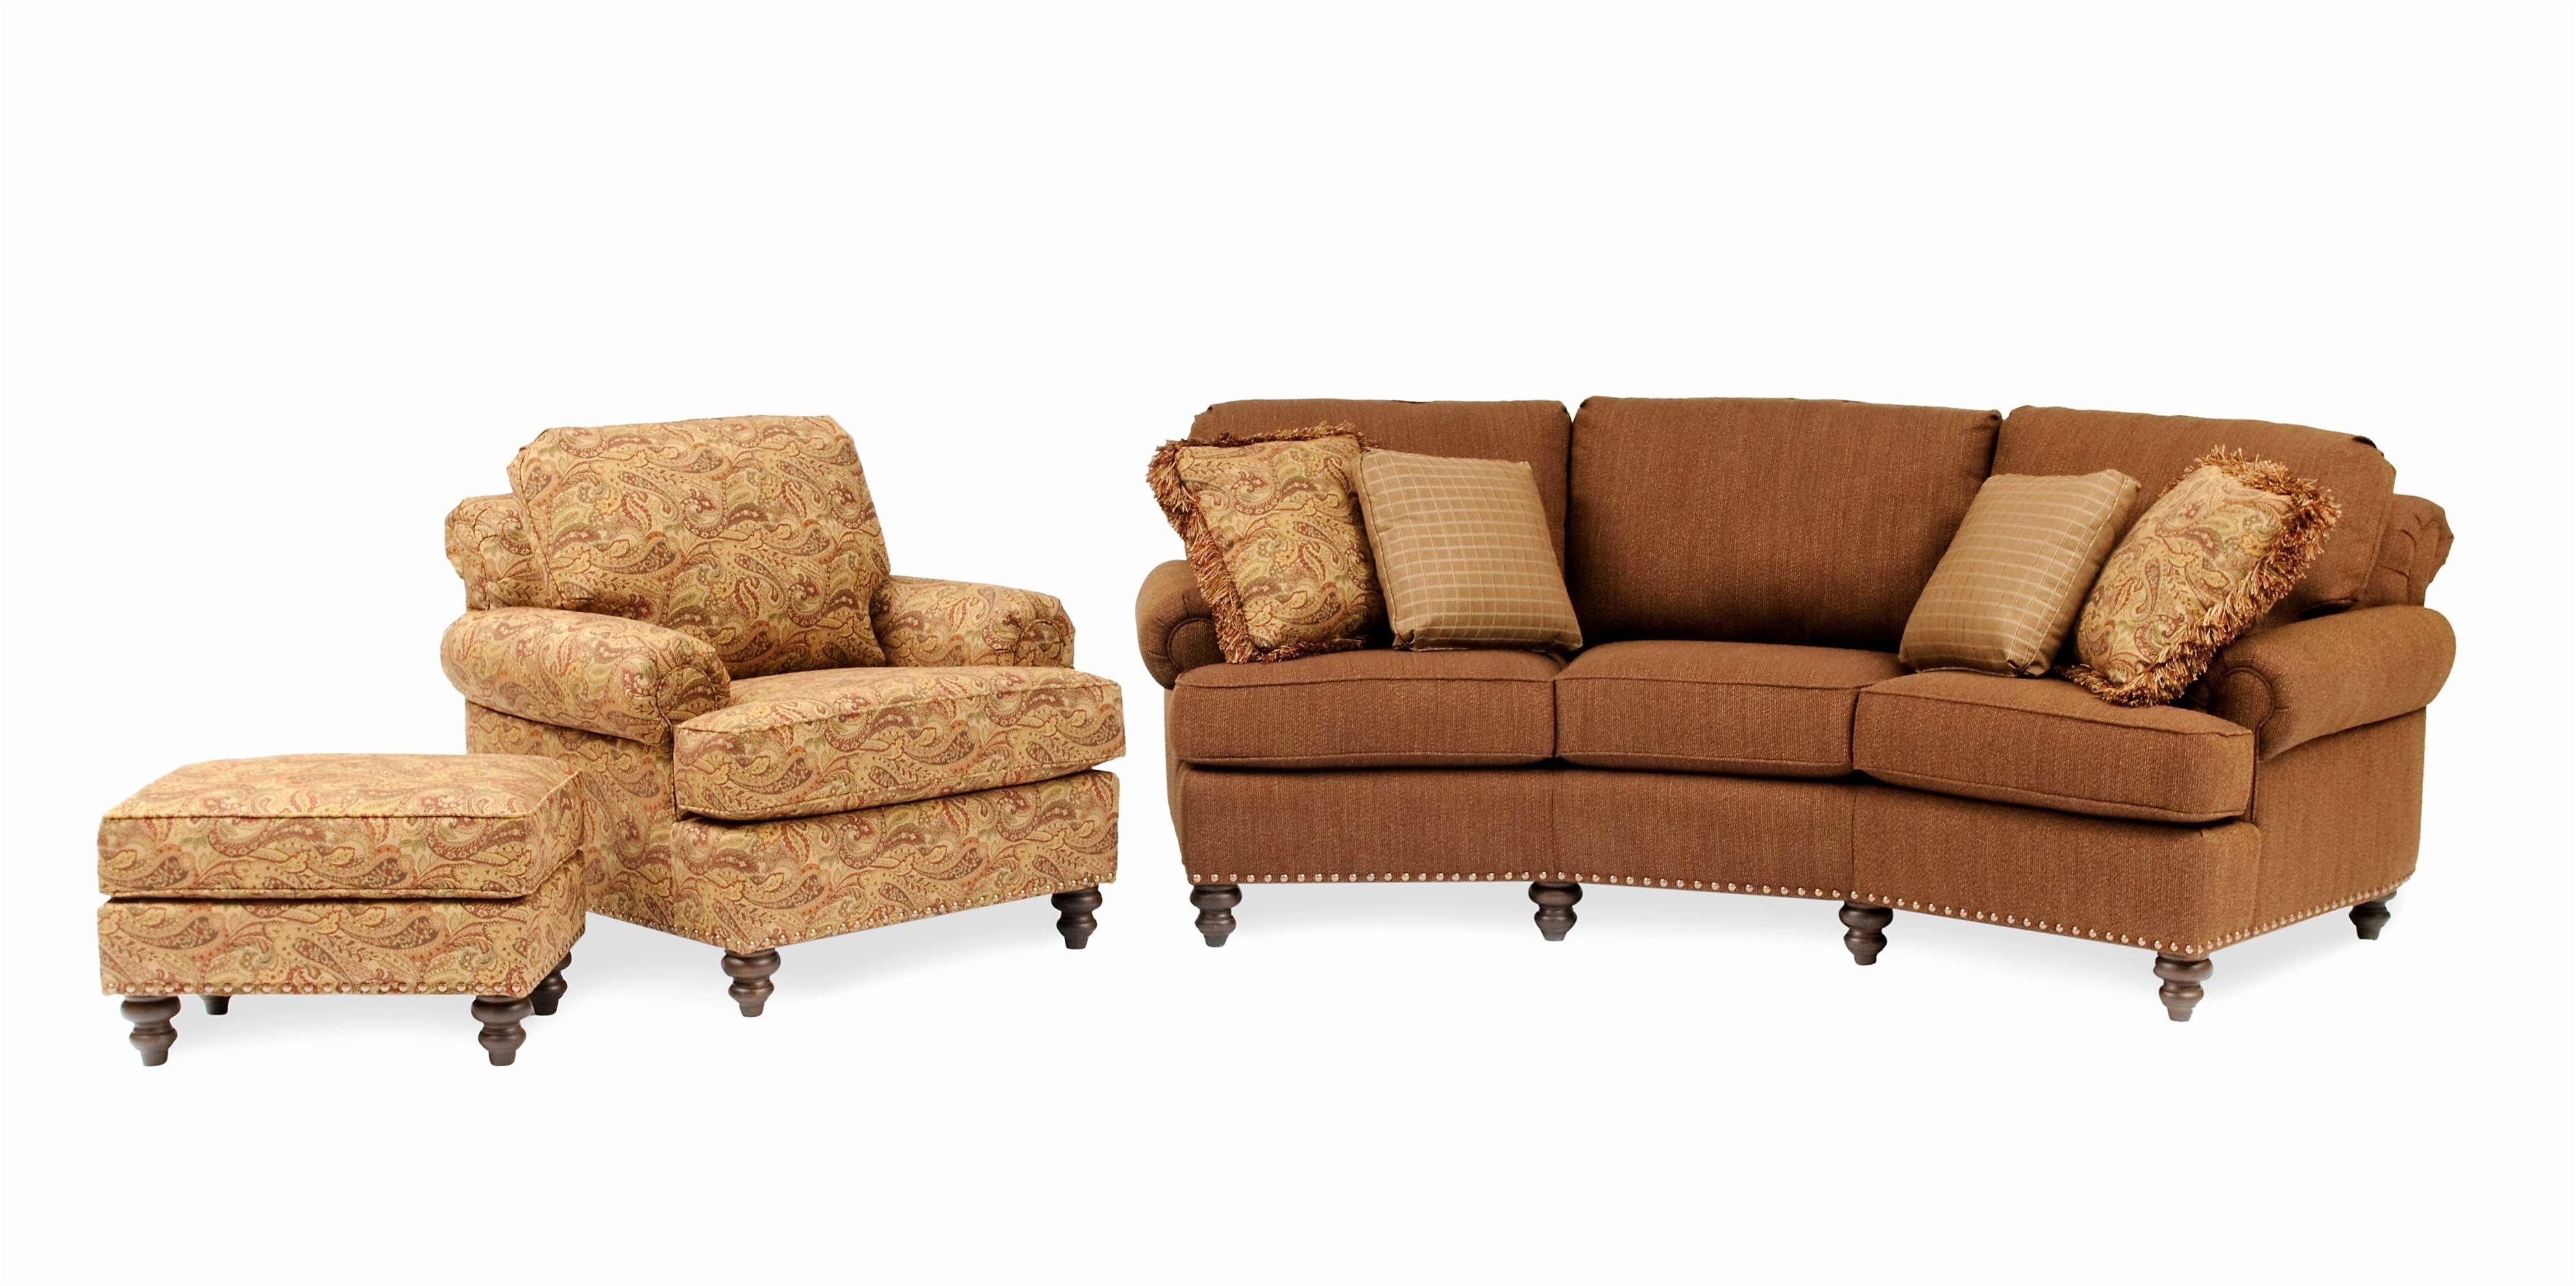 Sofa : Under Sale At Furniture Row Front Door Nebraska Mart For Furniture Row Sectional Sofas (View 5 of 10)